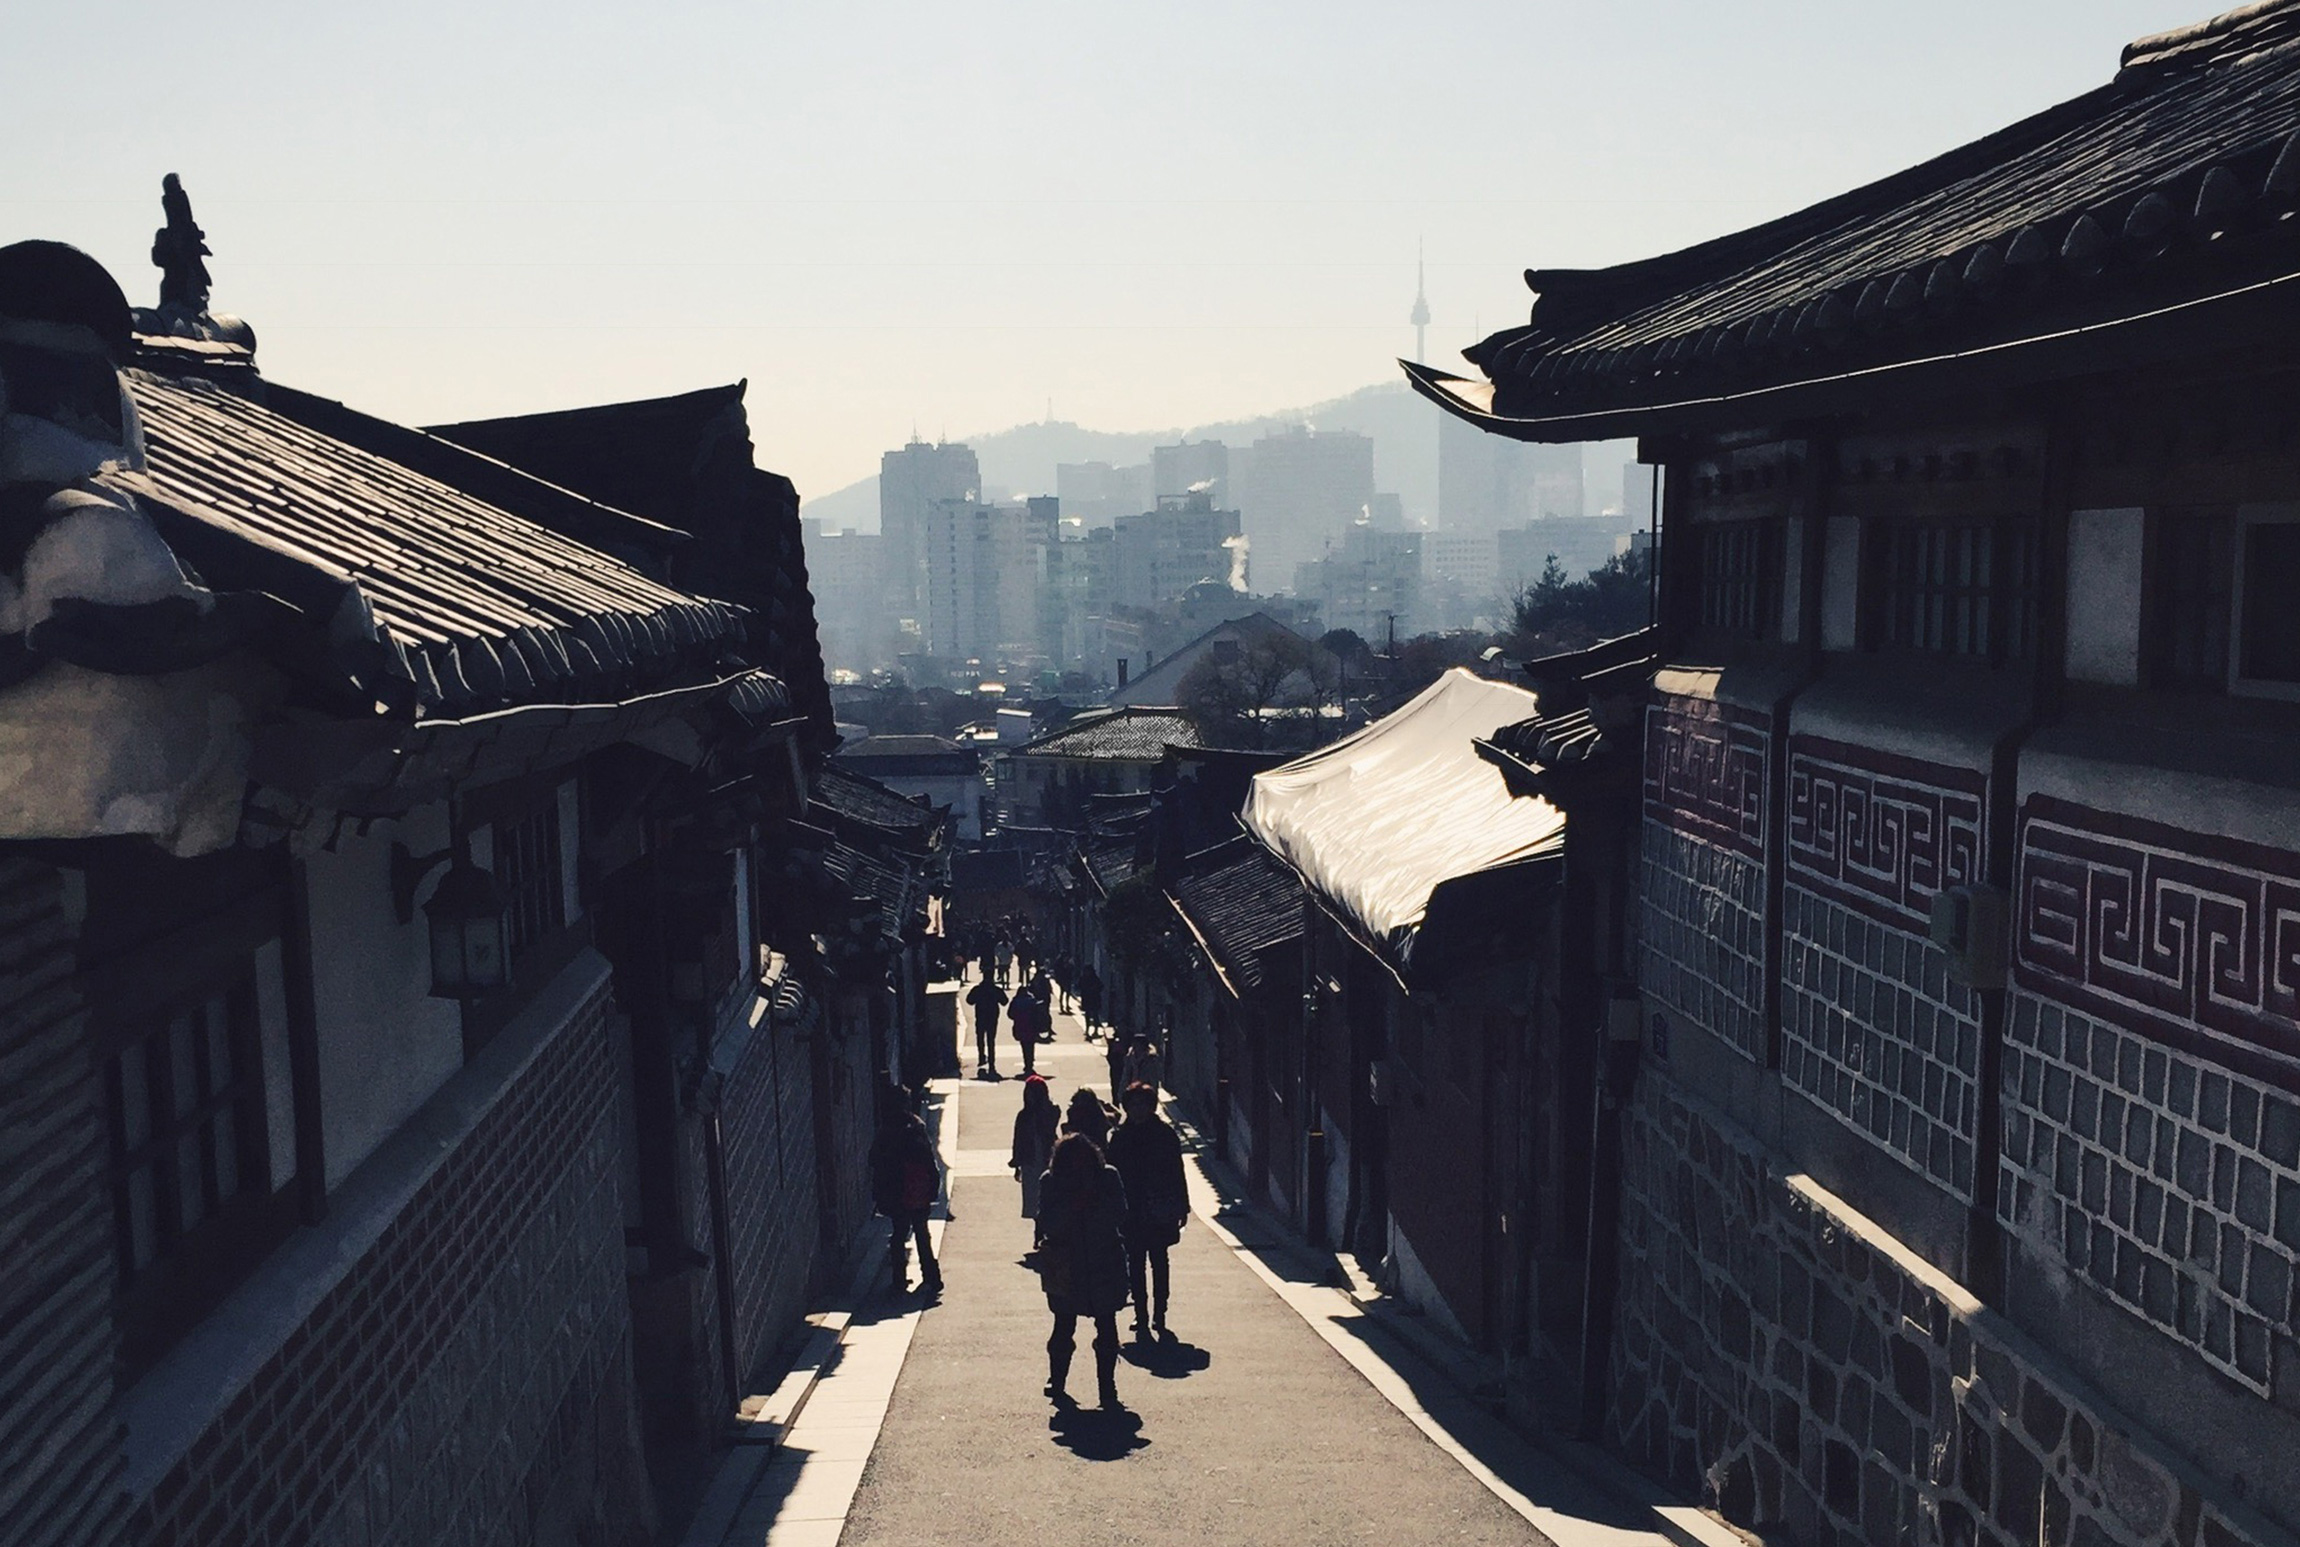 Seoul has a rich and complex history, the Bukchon Village is a living sample from a bygone era.